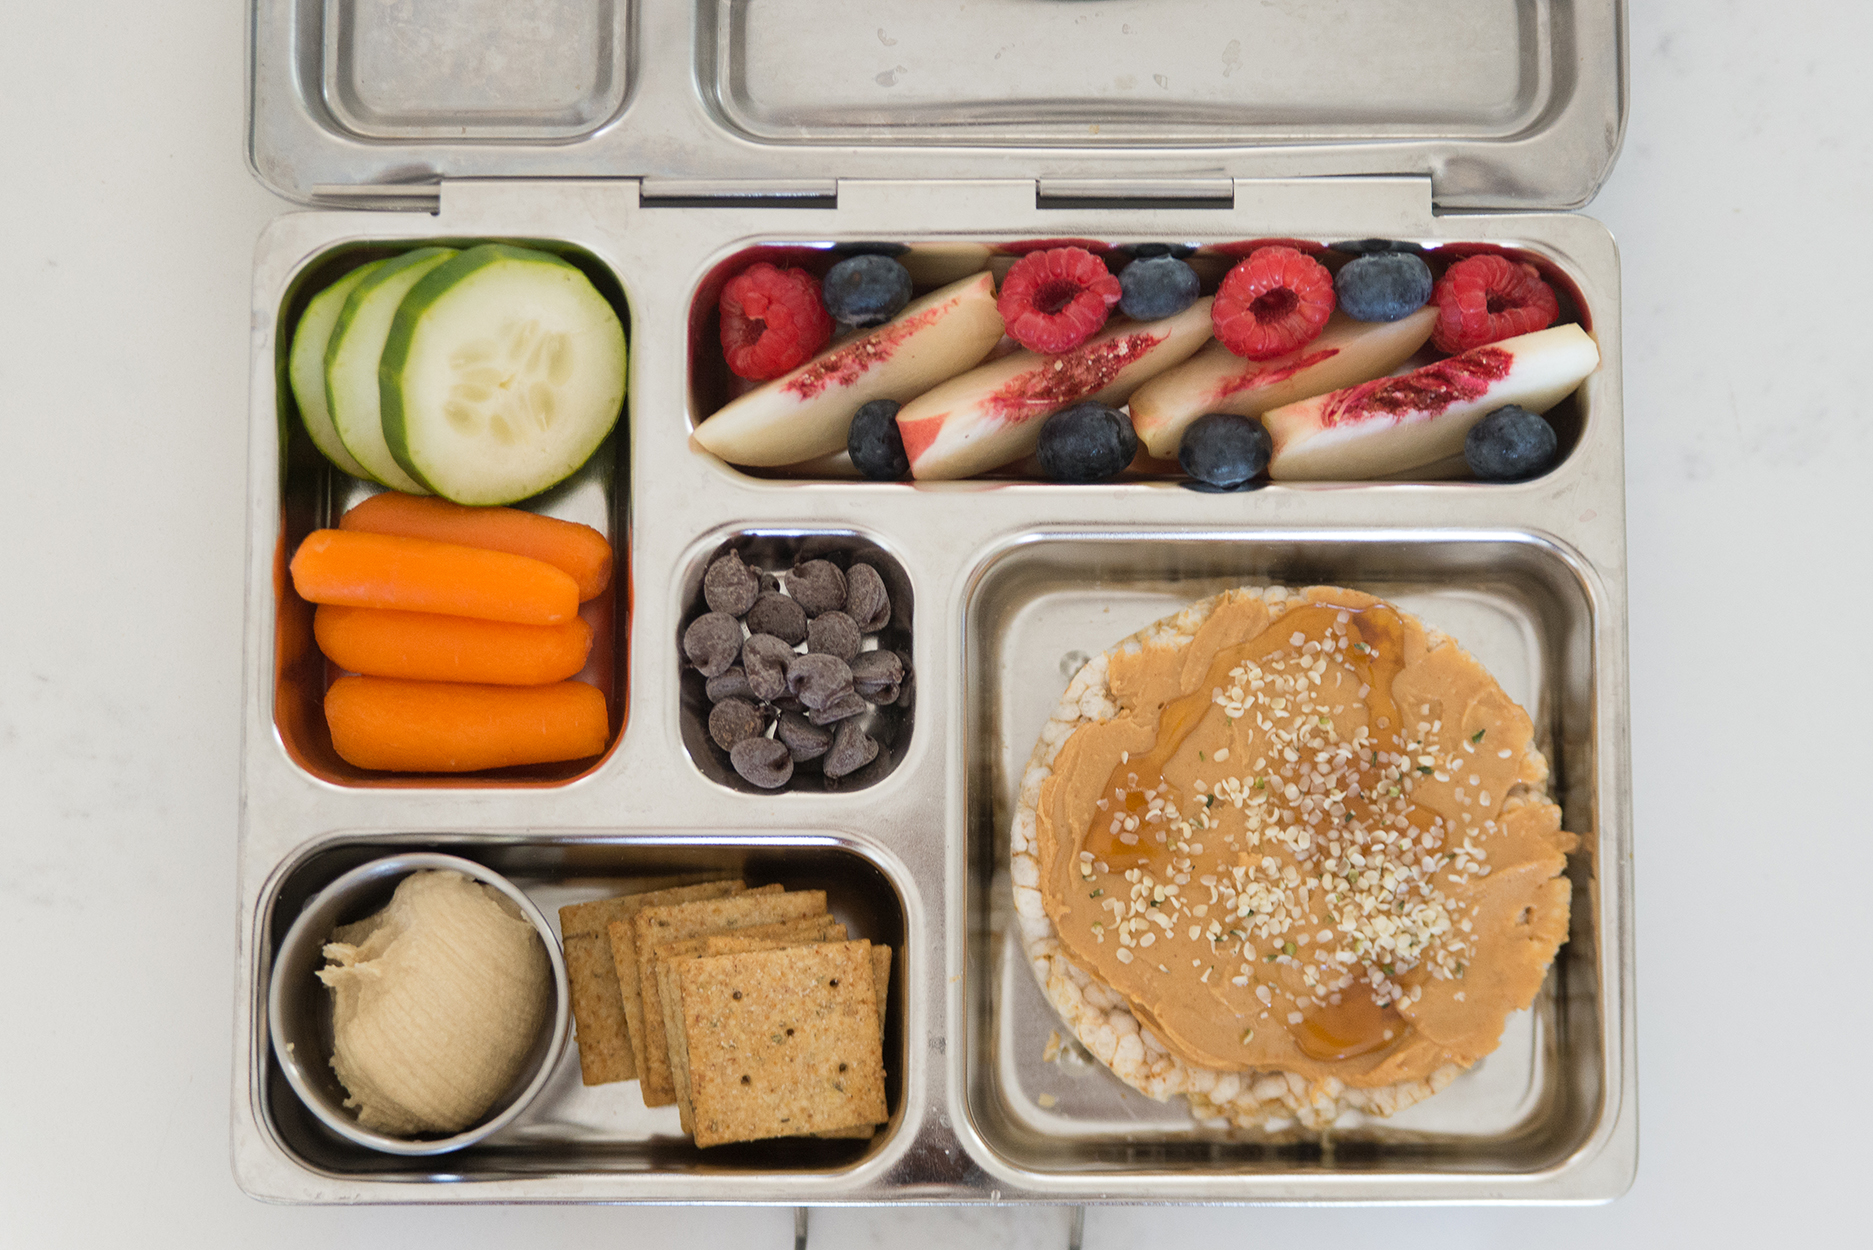 bento box full of fruit, veggies, hummus and a peanut butter rice cake